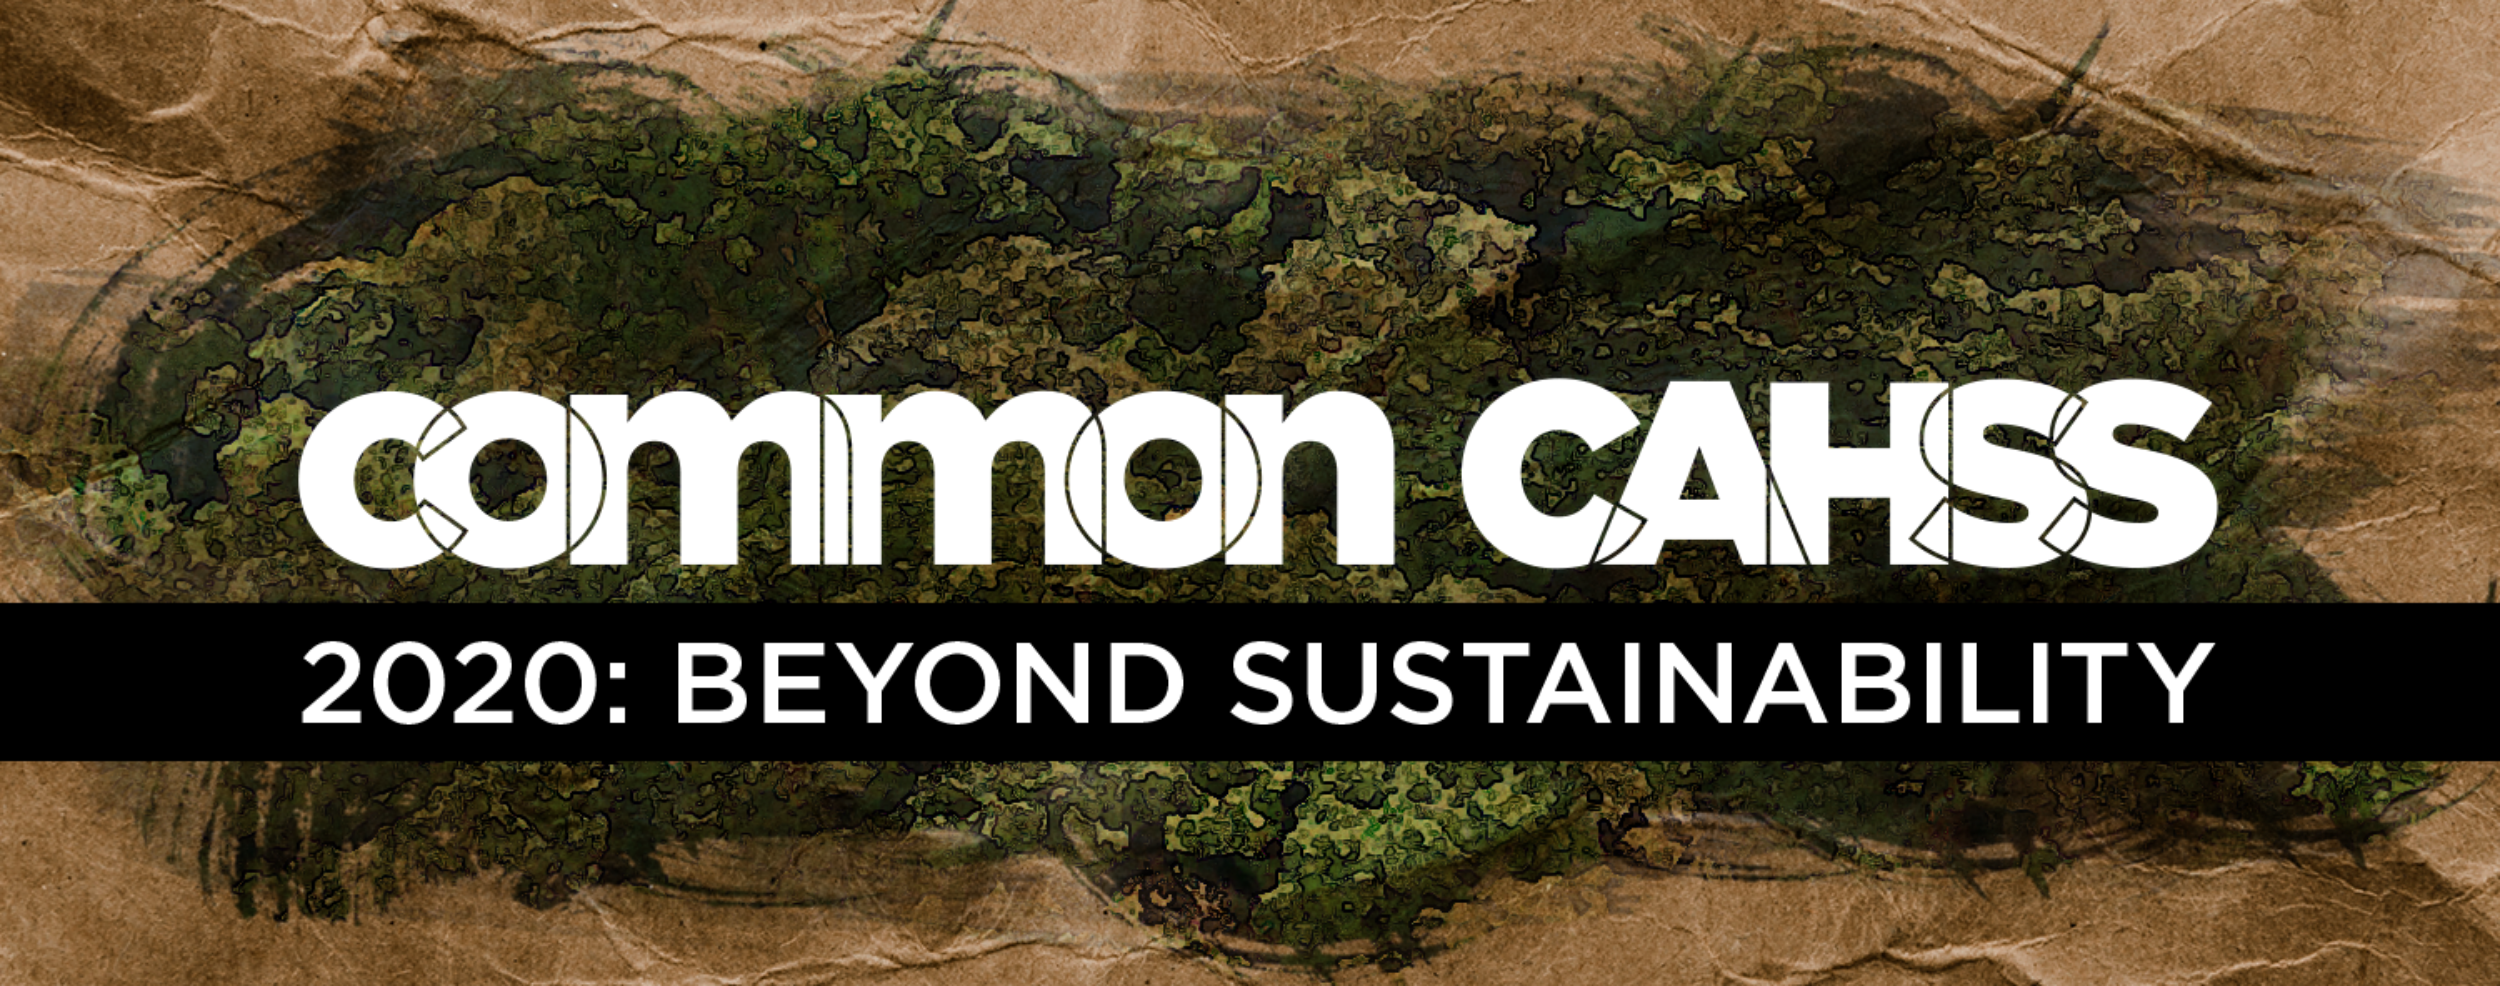 Common CAHSS: Beyond Sustainability